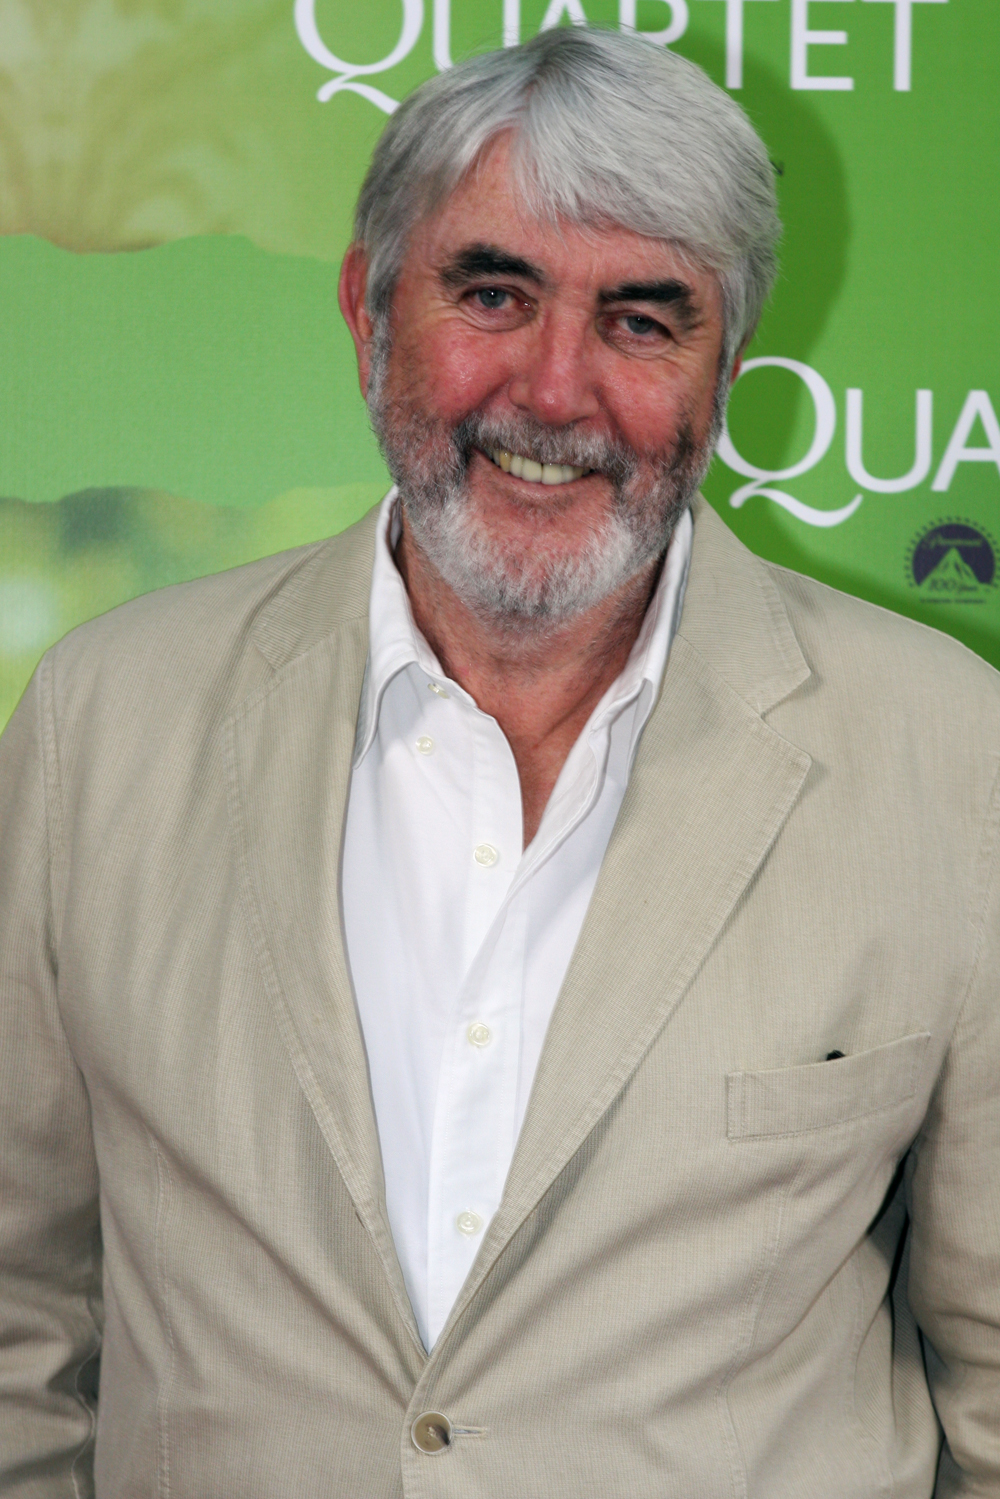 John Alderton (born 1940)